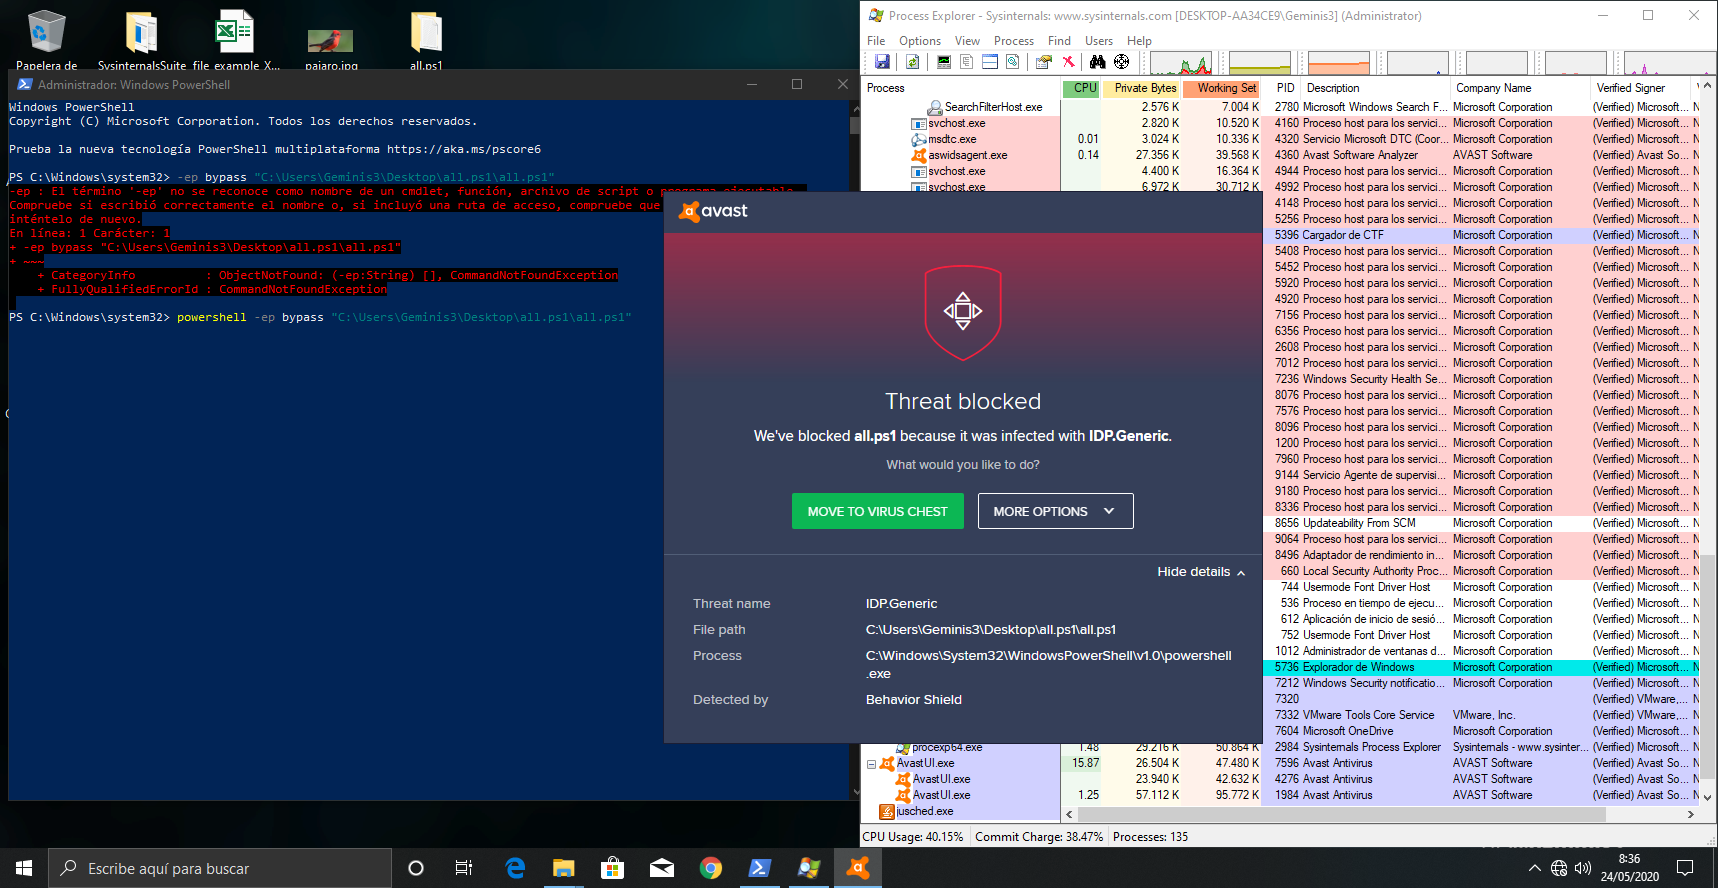 Avast VM-2020-05-24-08-36-07.png